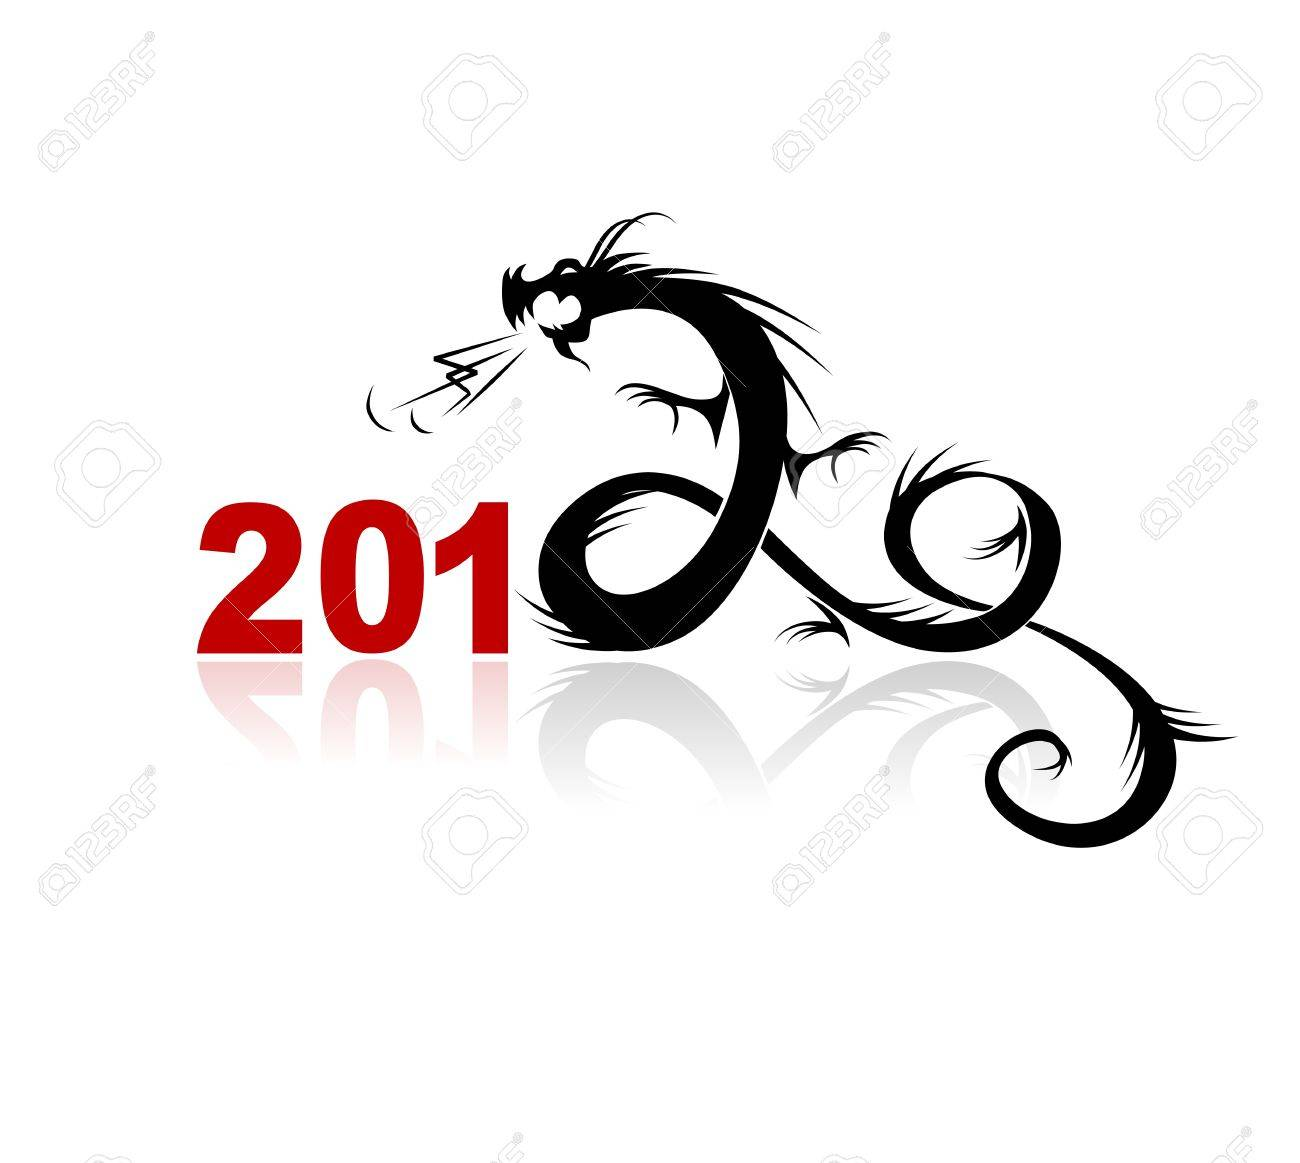 2012 year of dragon, illustration for your design Stock Vector - 10723985